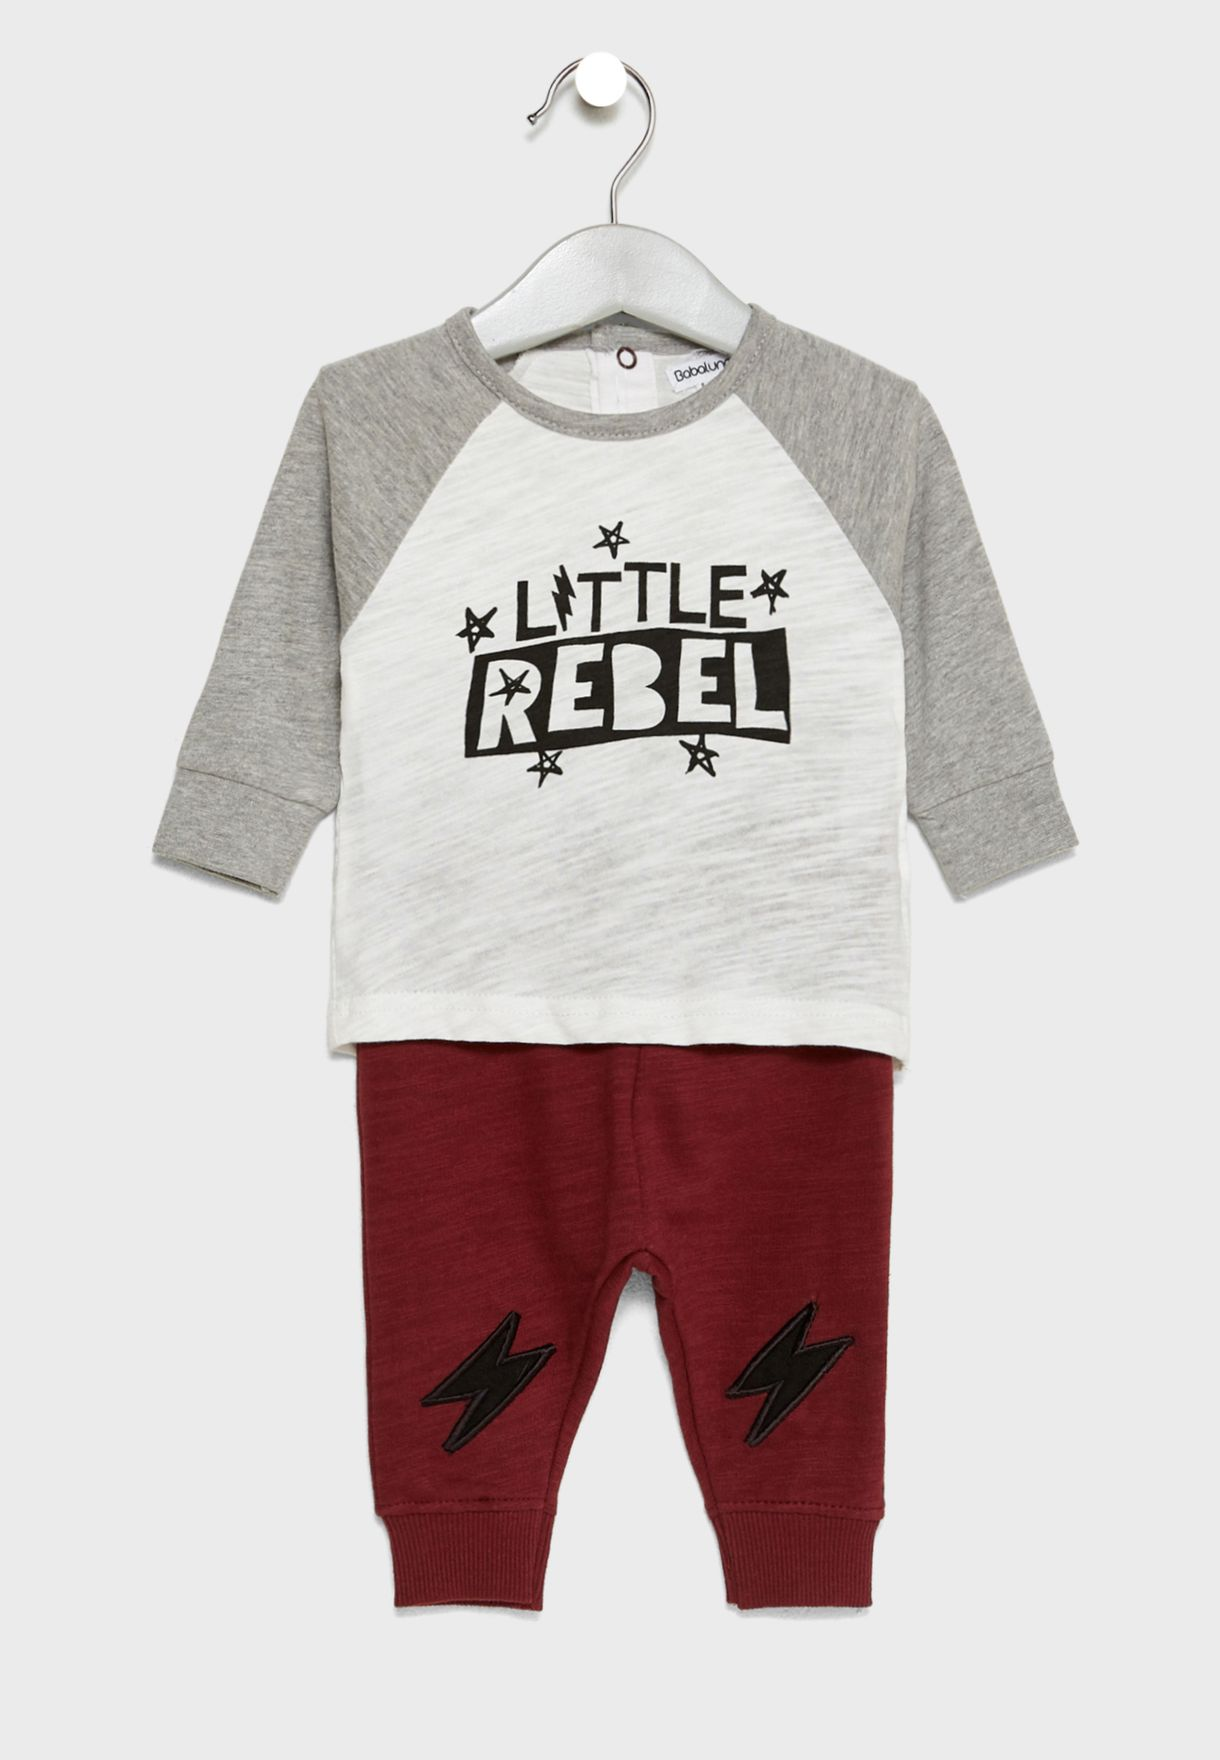 Infant Sweatshirt + Sweatpants Set